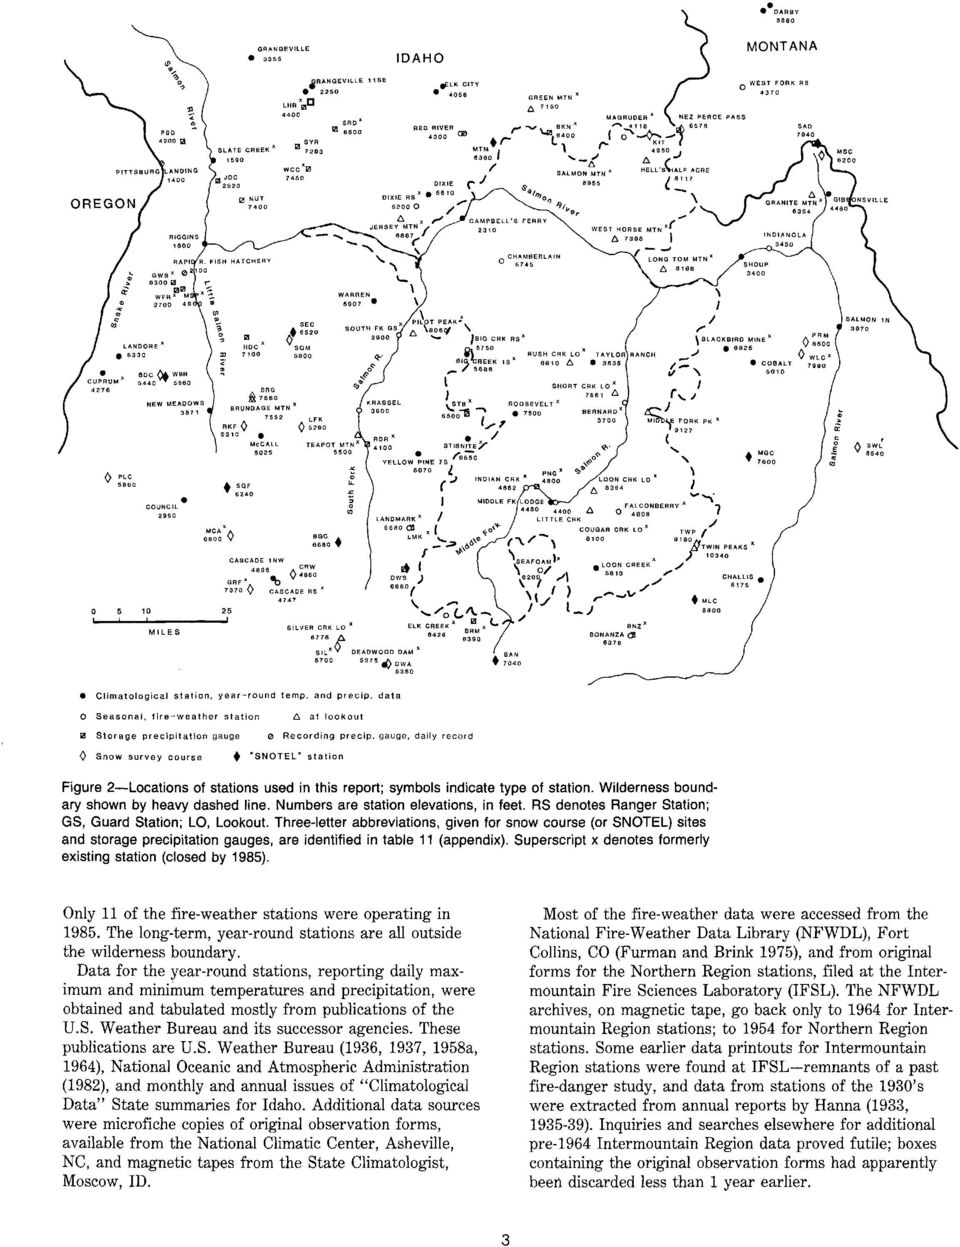 "gauge, daily record 0 Snow survey course ""SNOTEL"" station Figure 2-Locations of stations used in this report; symbols indicate type of station. Wilderness boundary shown by heavy dashed line."